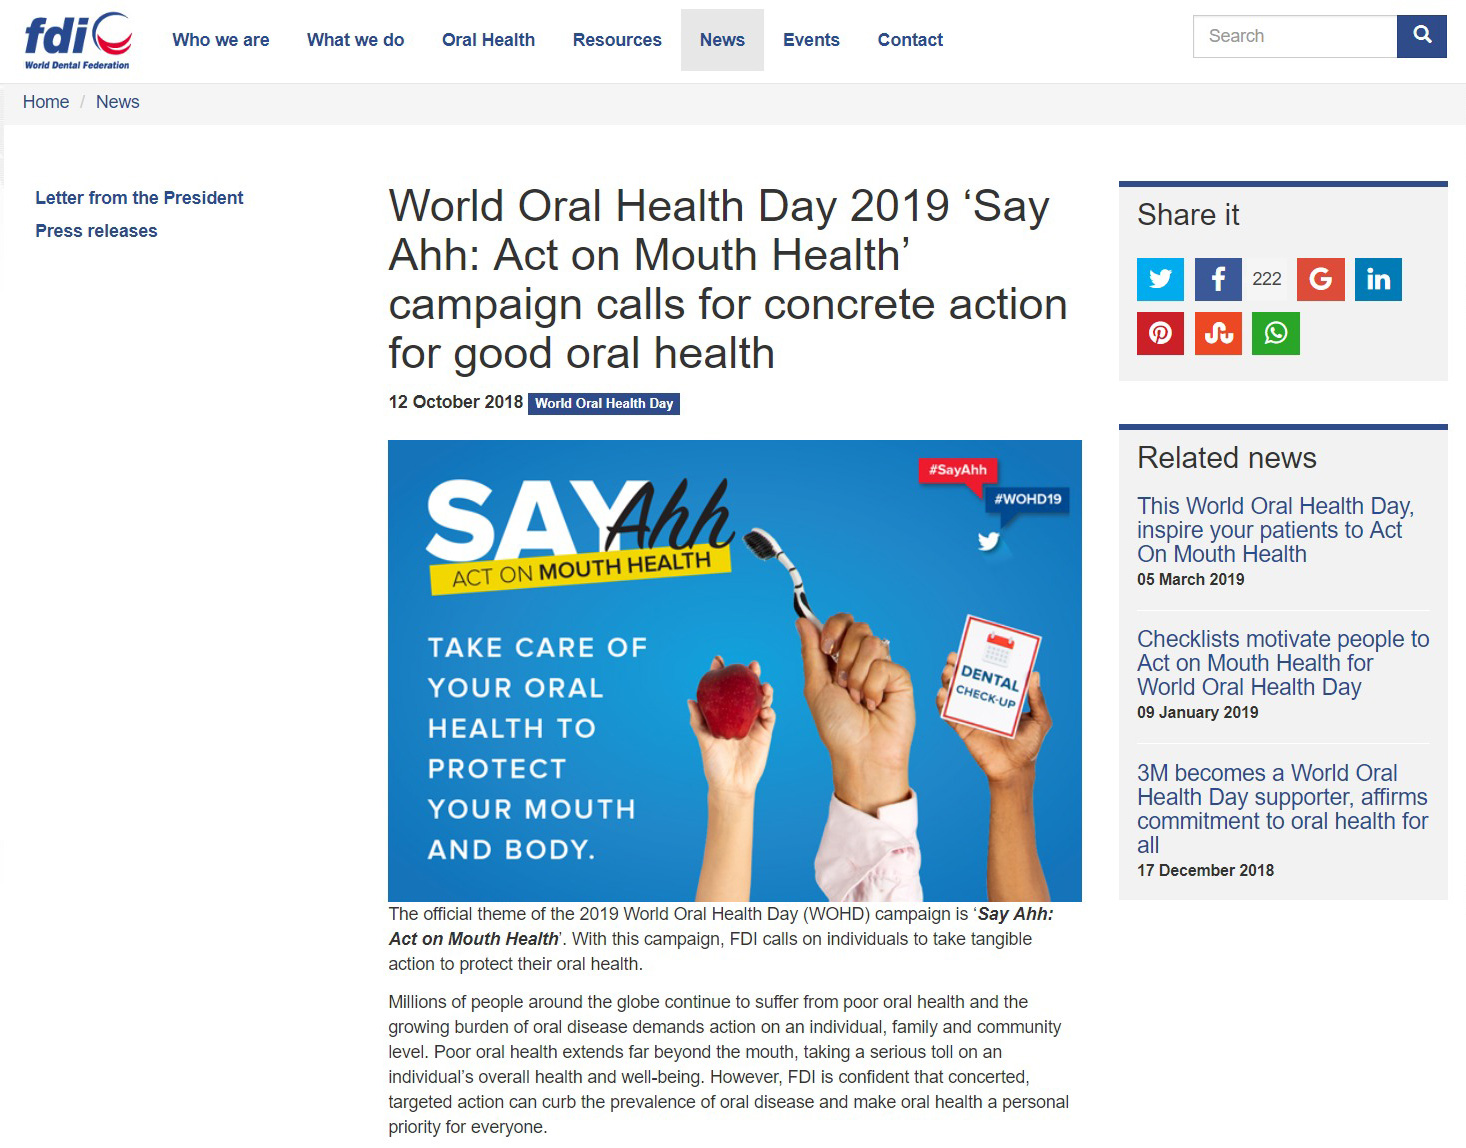 World-Oral-Health-Day-2019.png